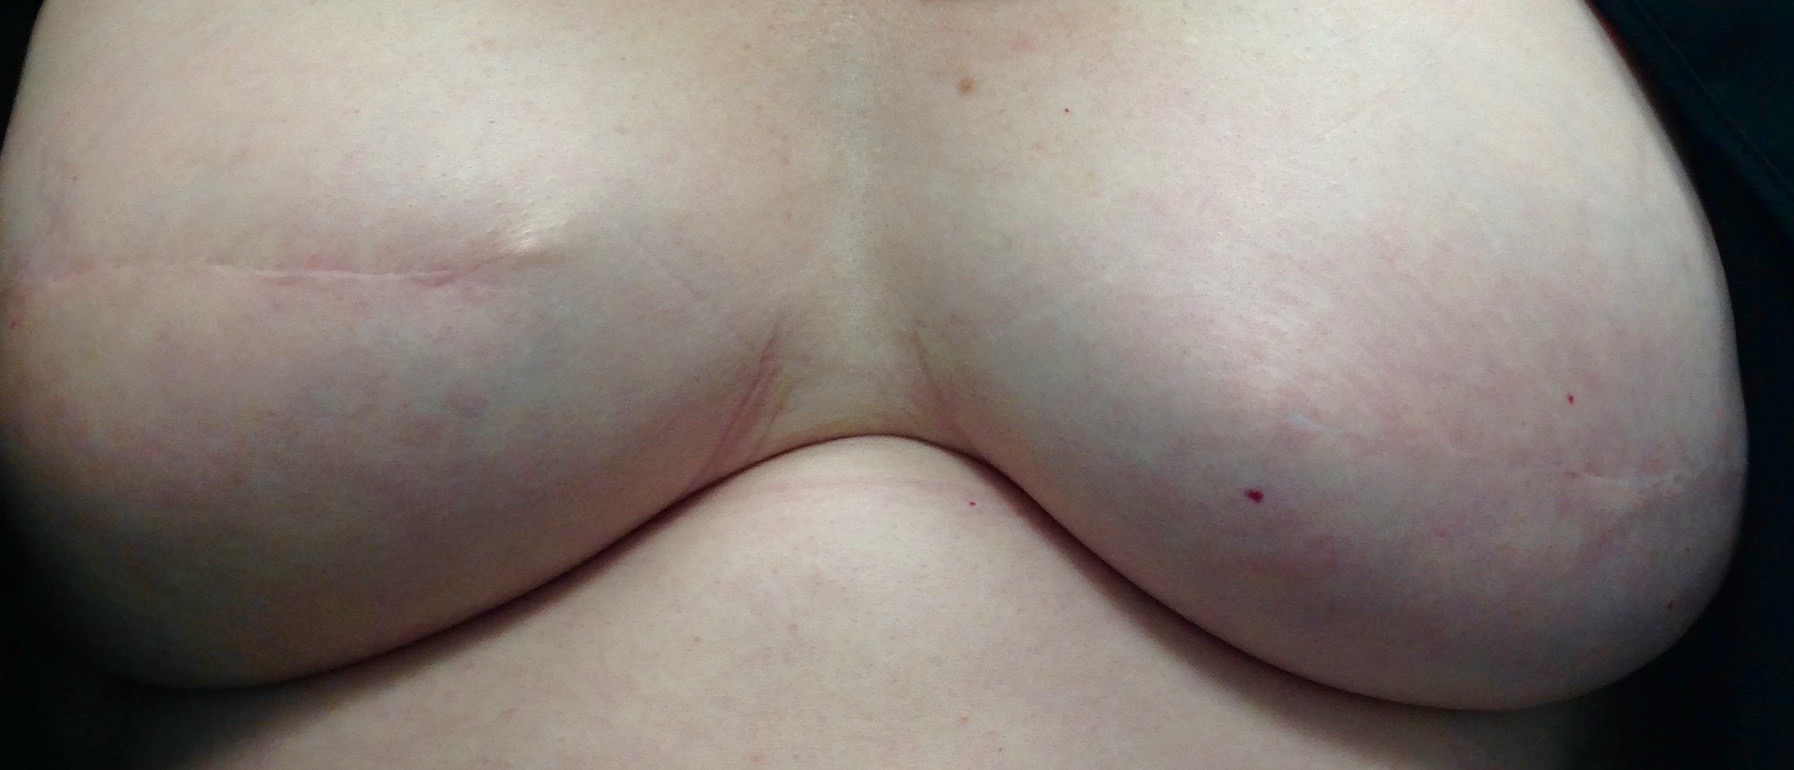 Before 3D areola 2.jpg